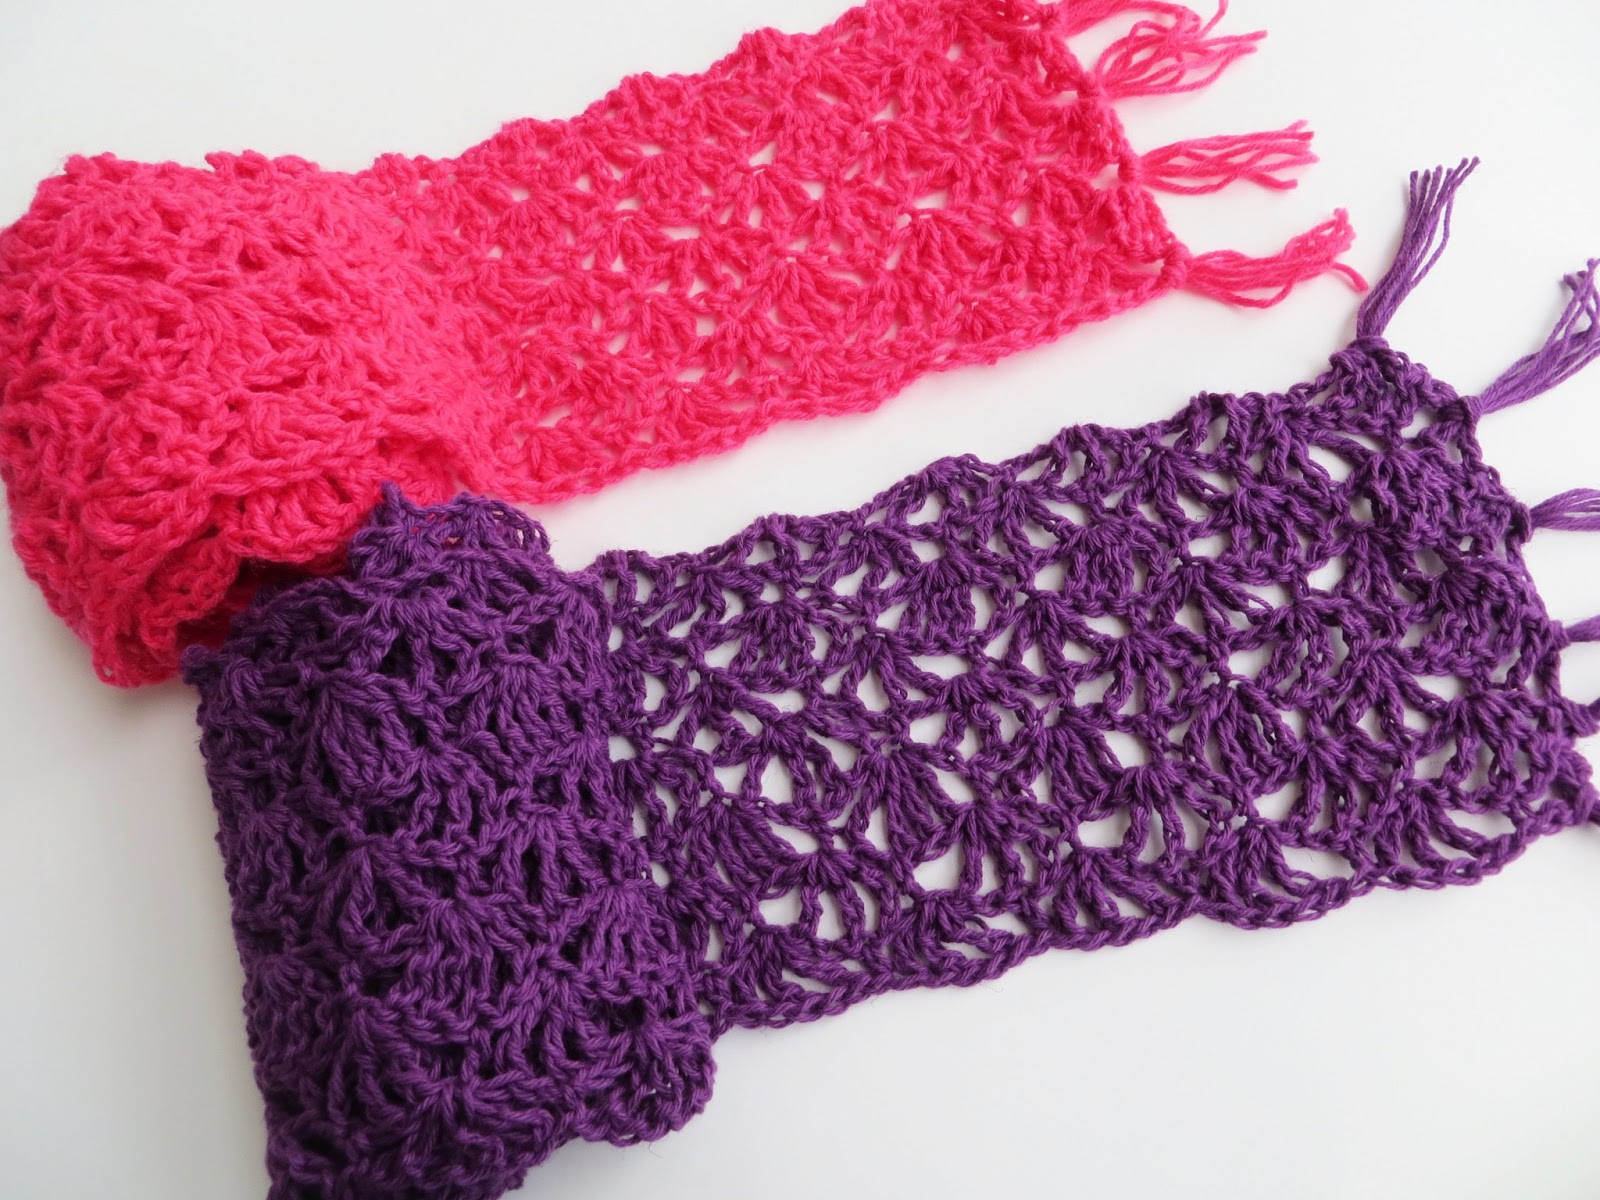 Crocheting Easy Patterns : Crochet Dreamz: Alana Lacy Scarf, Free Crochet Pattern